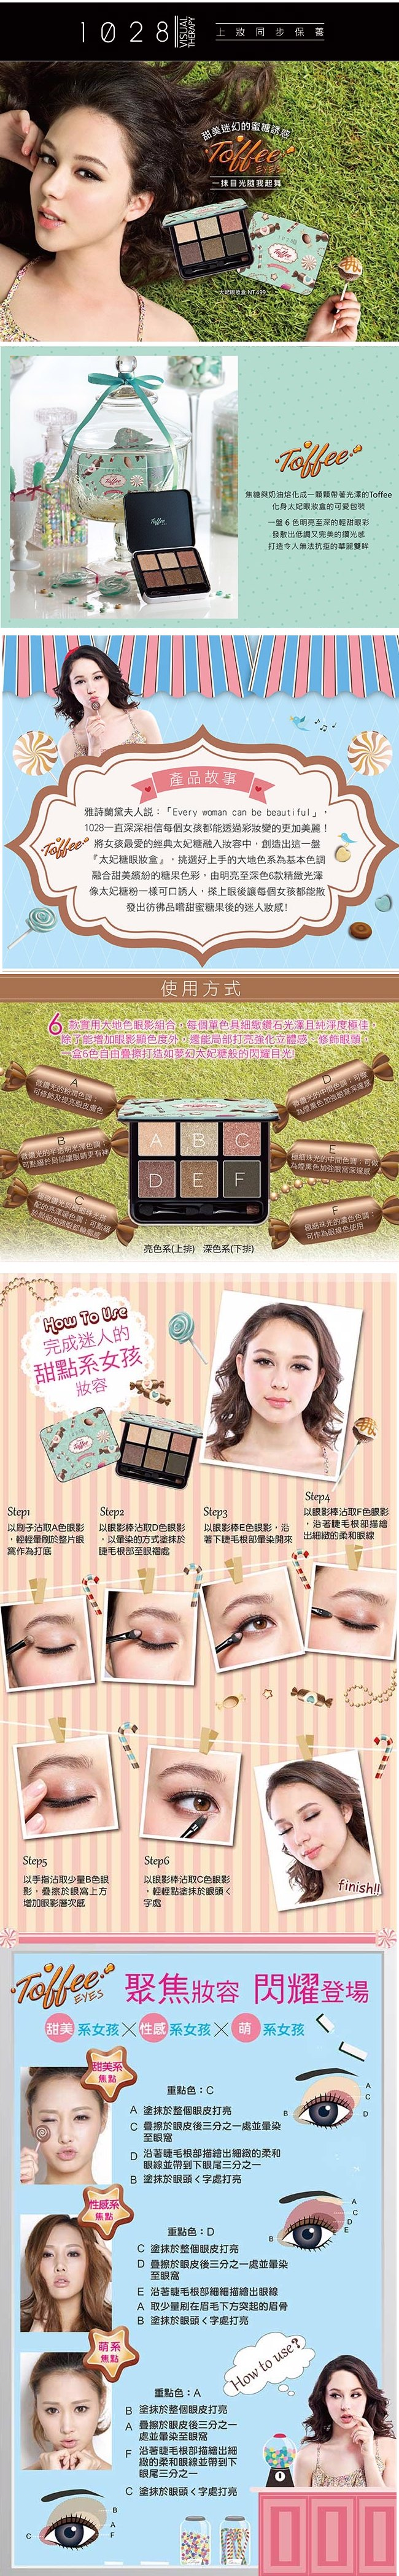 1028-visual-therapy-toffee-eyeshadow-kit.jpg